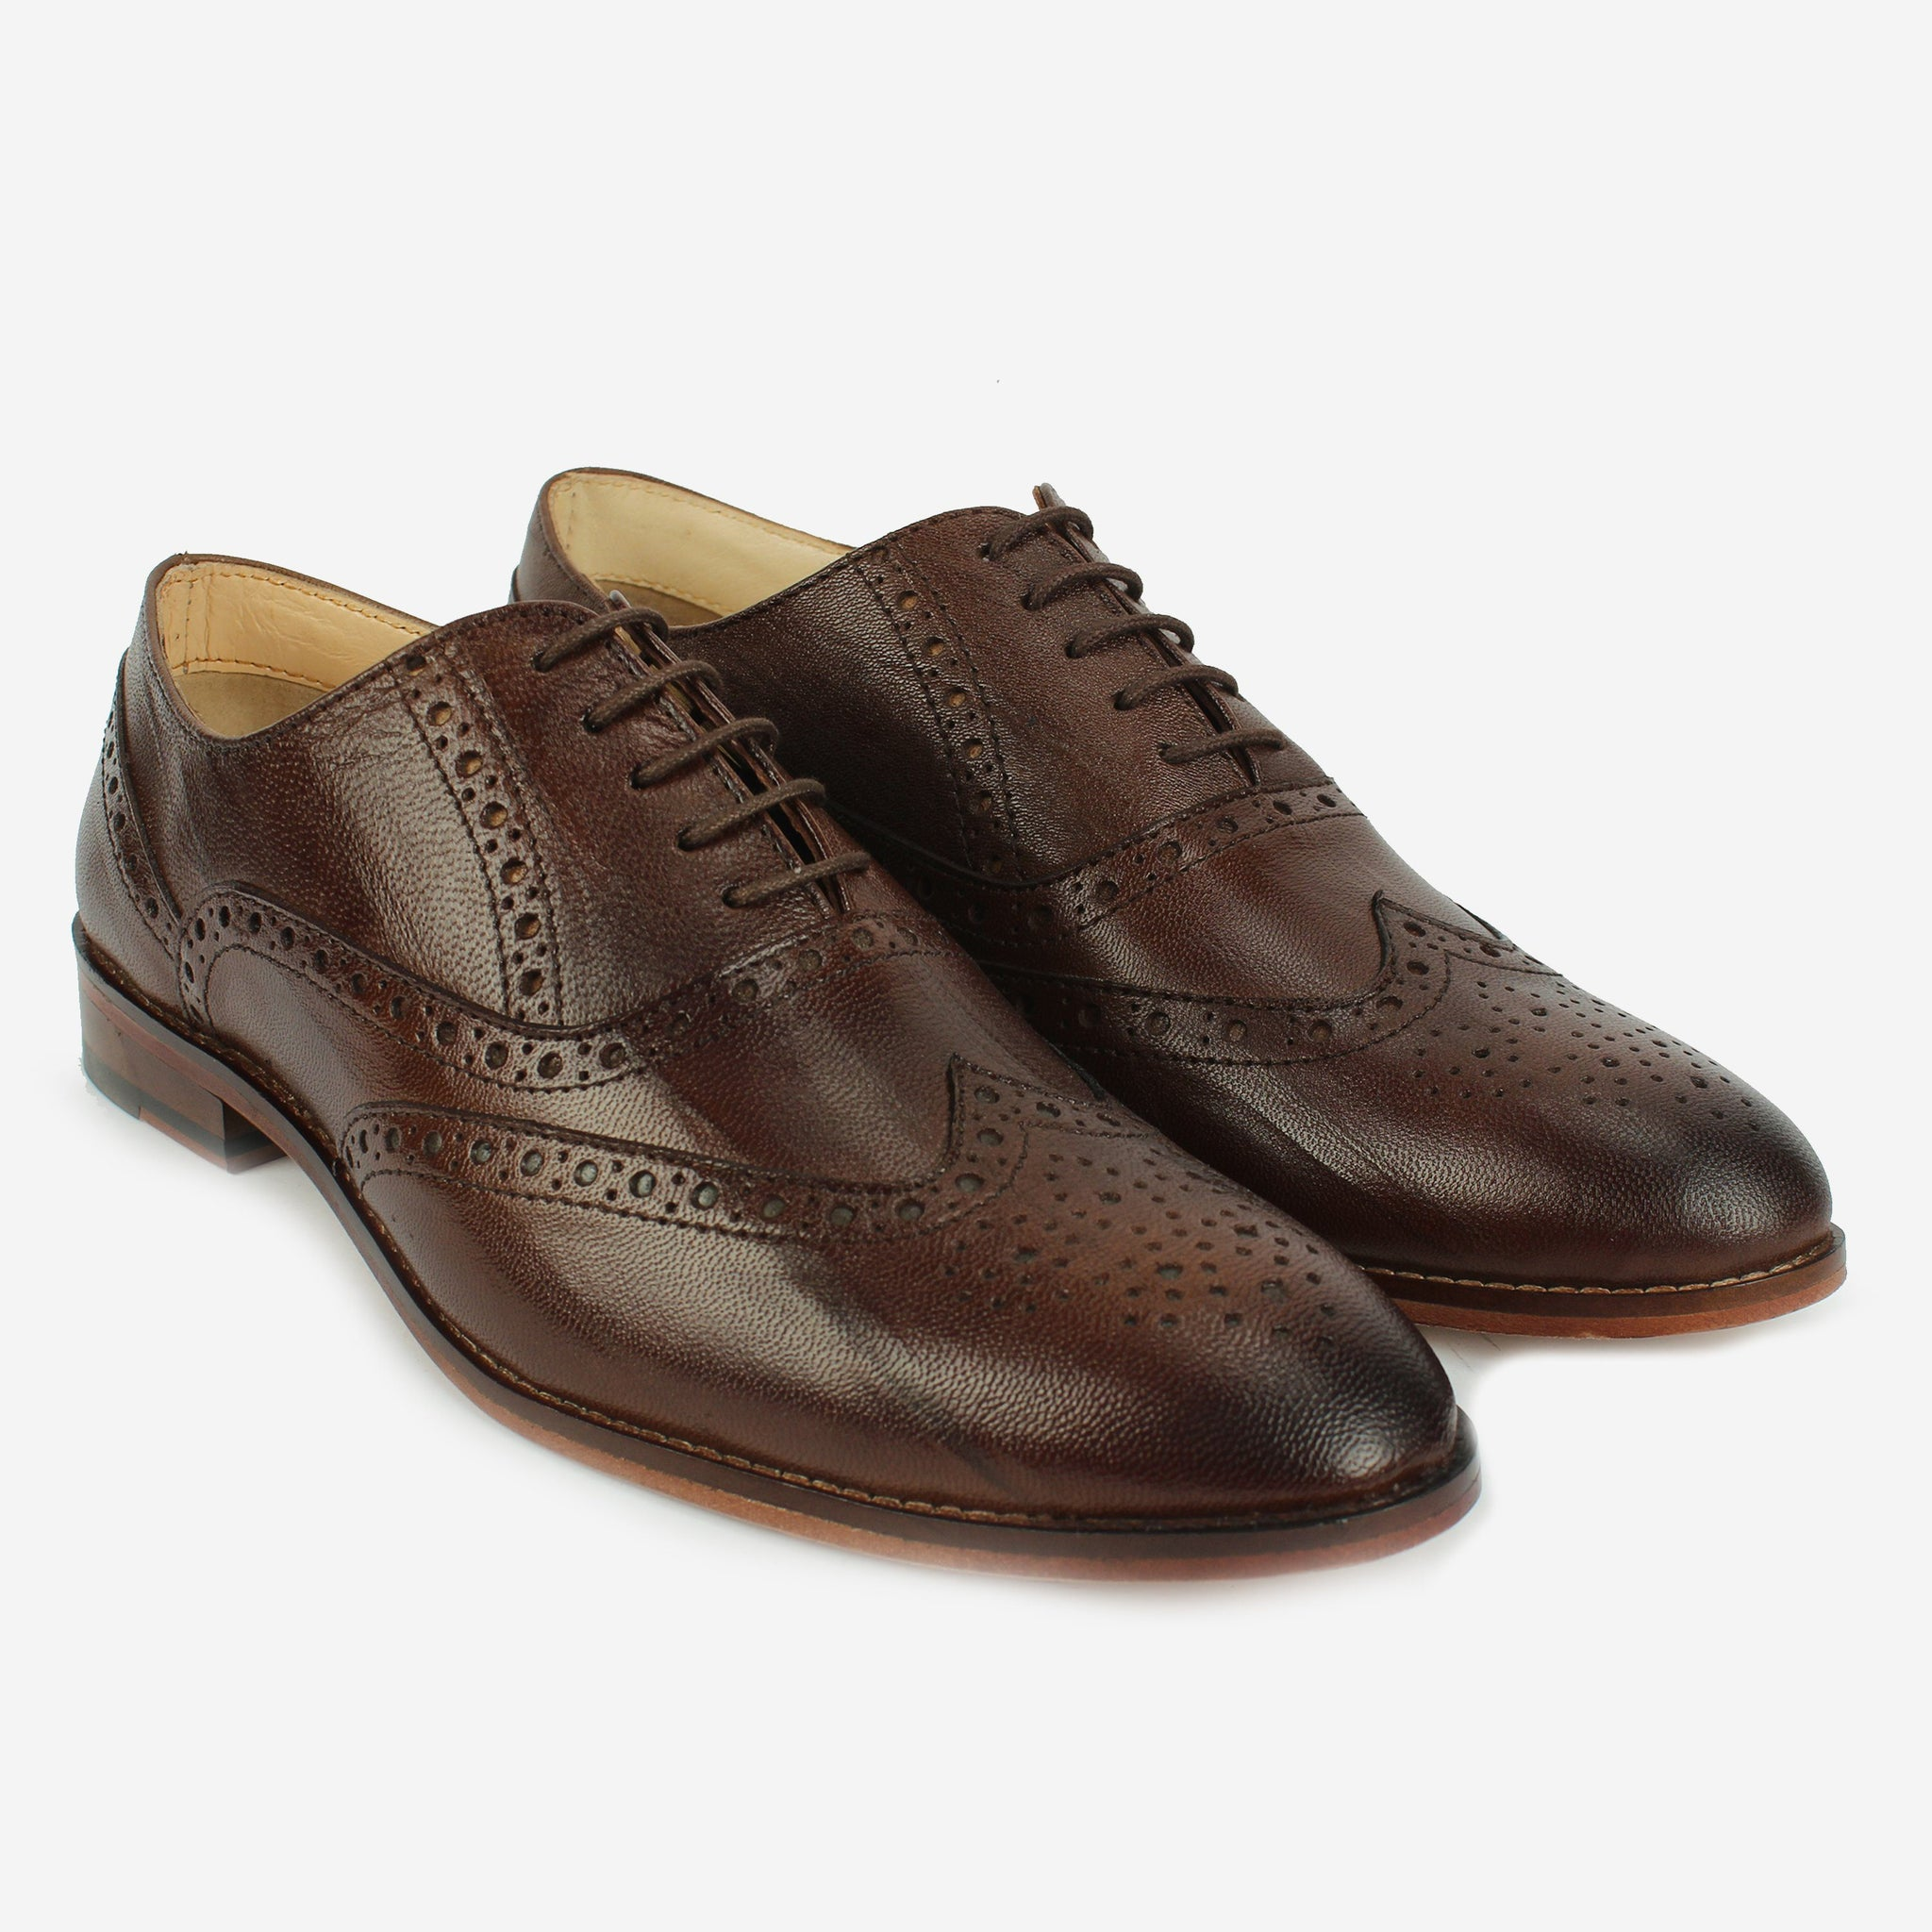 Castor Wingtip Oxford Chocolate Brown Thebootsco